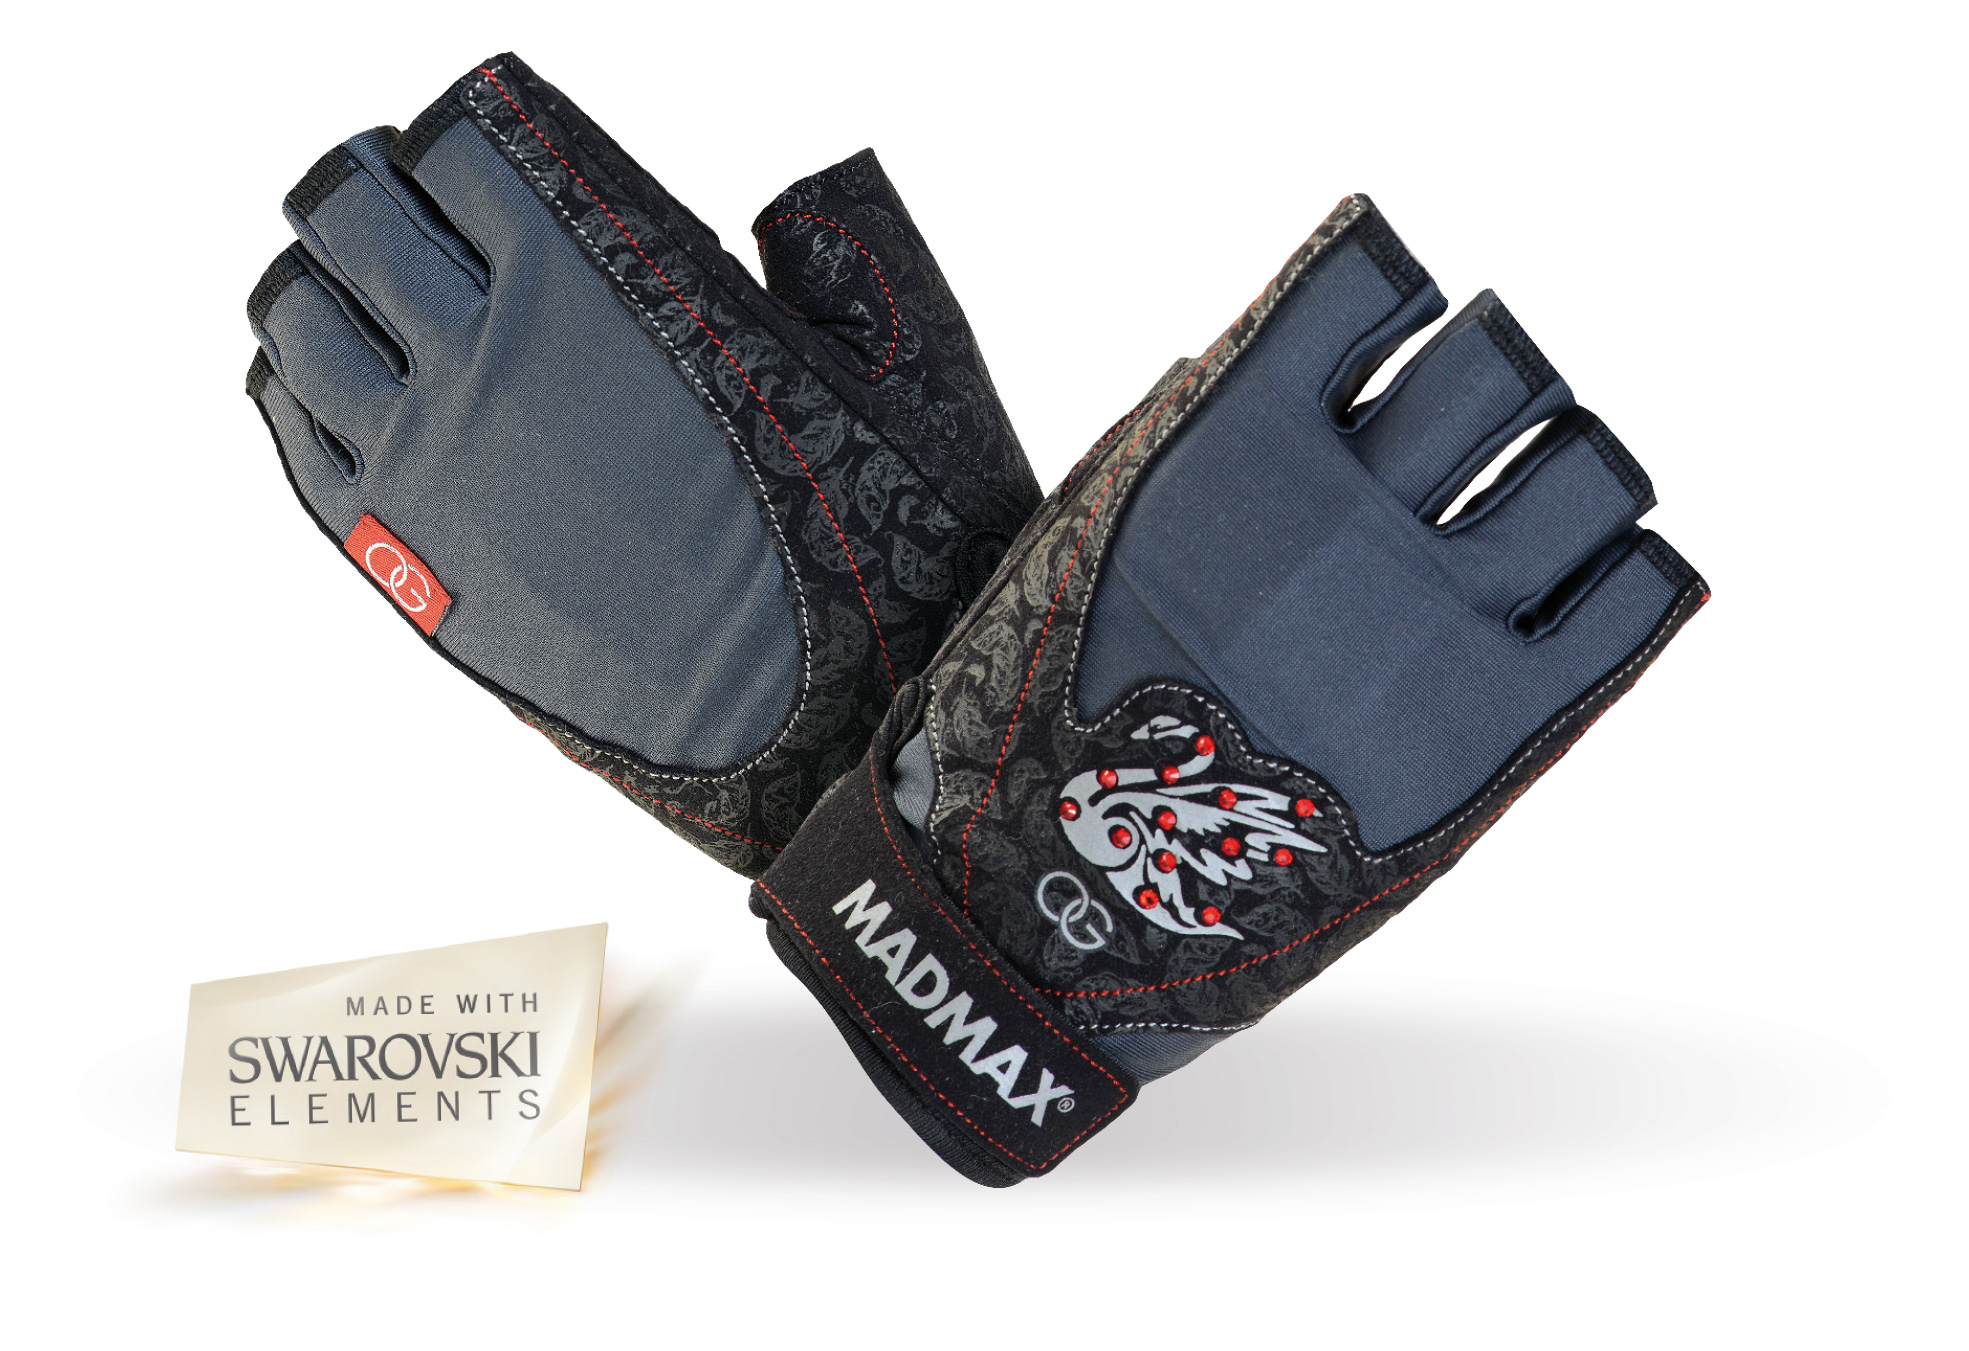 MAD MAX MFG-750 oksana grishina black swan swarovski elements gloves